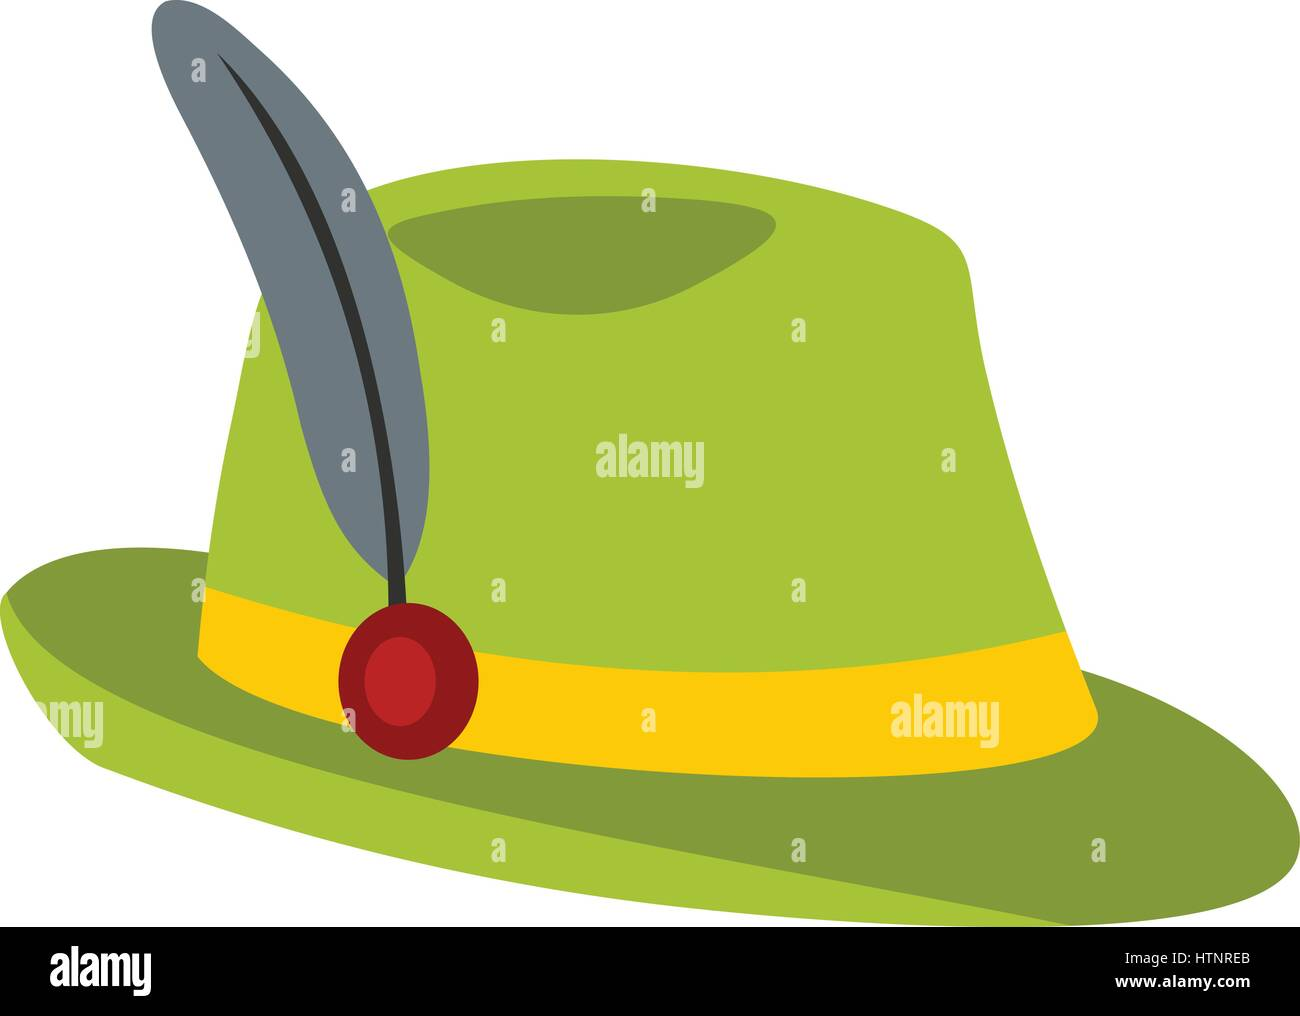 c2cd5e94581 Green hat with feather icon